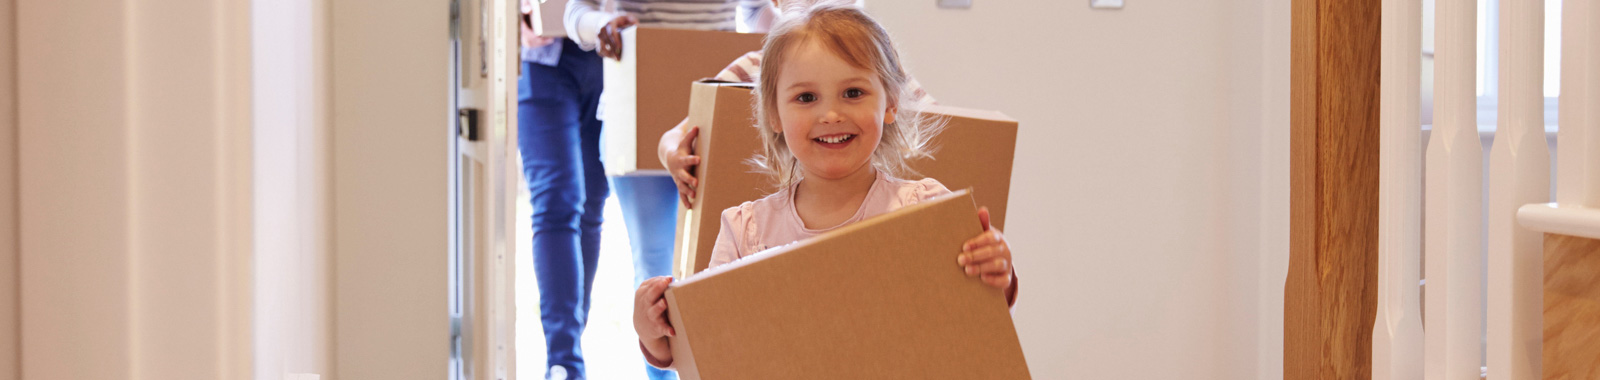 Young girl moving boxes